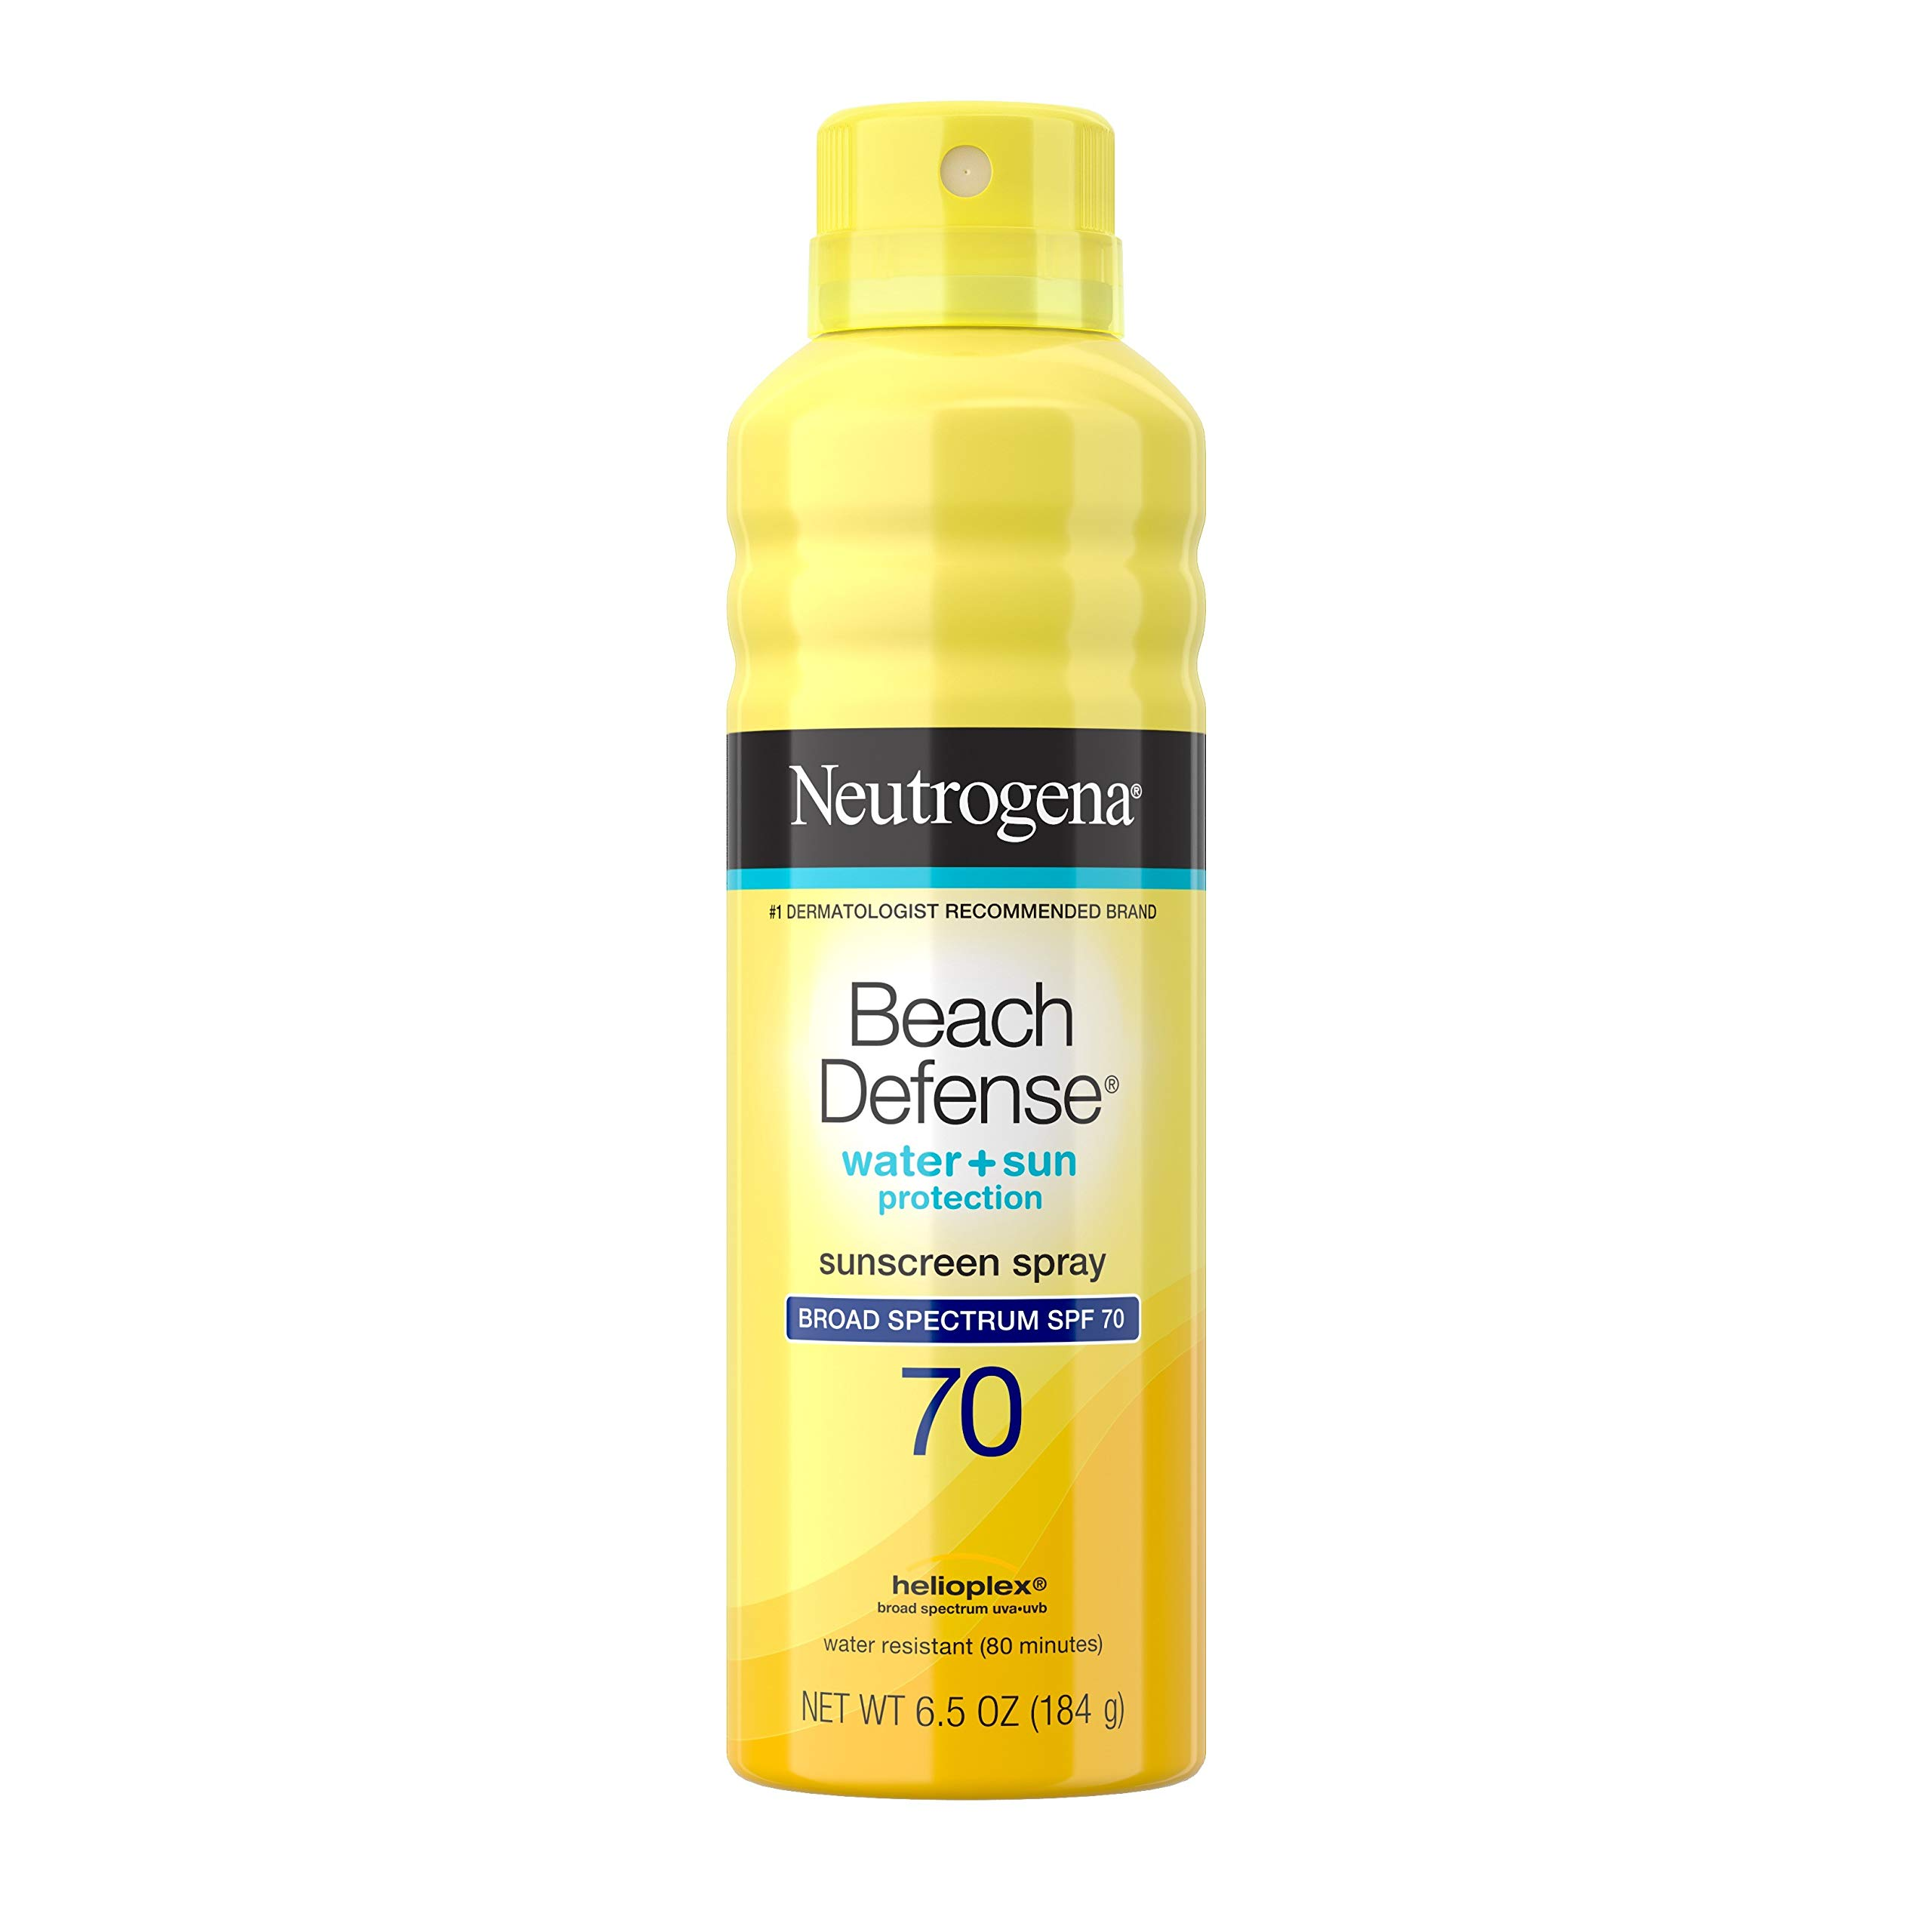 Neutrogena Beach Defense Spray Sunscreen with Broad Spectrum SPF 70, Fast Absorbing Sunscreen Body Spray Mist, Water-Resistant & Oil-Free UVA/UVB Sun Protection, 6.5 oz